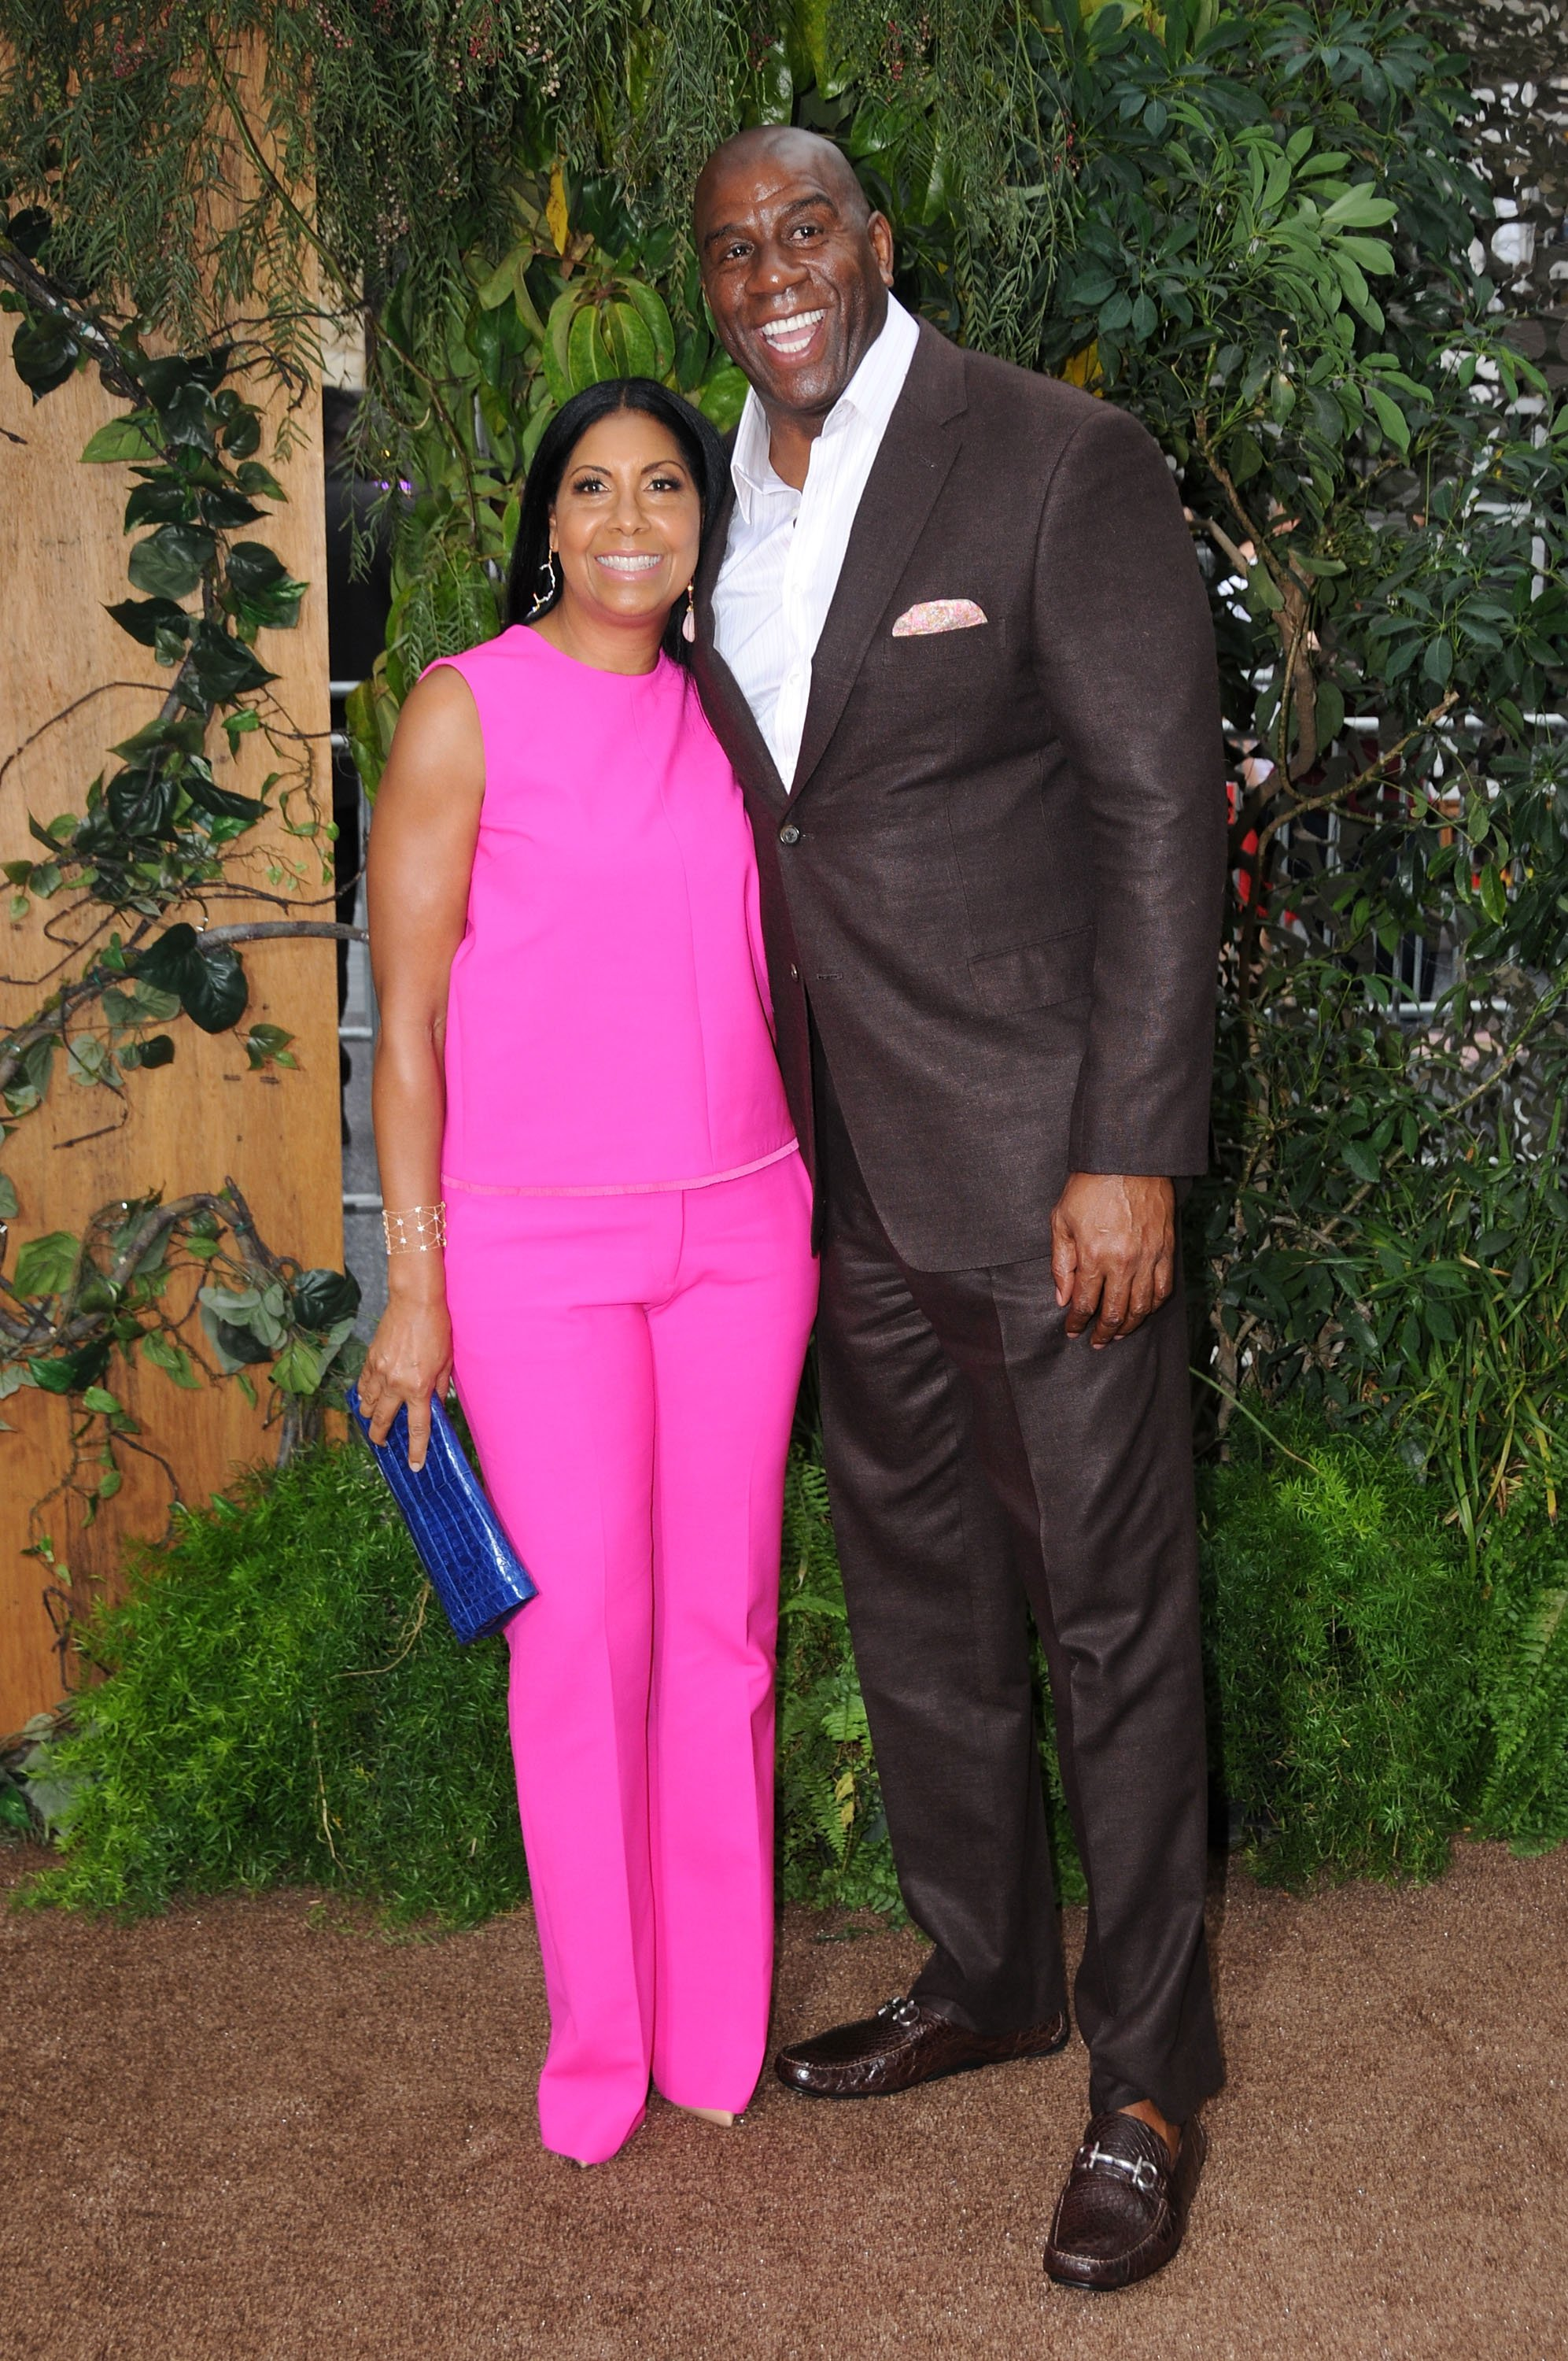 Cookie Johnson and Magic Johnson at the' 'The Legend Of Tarzan' premiere at the TCL Chinese Theatre on June 27, 2016 in Hollywood, California.|Source: Getty Images